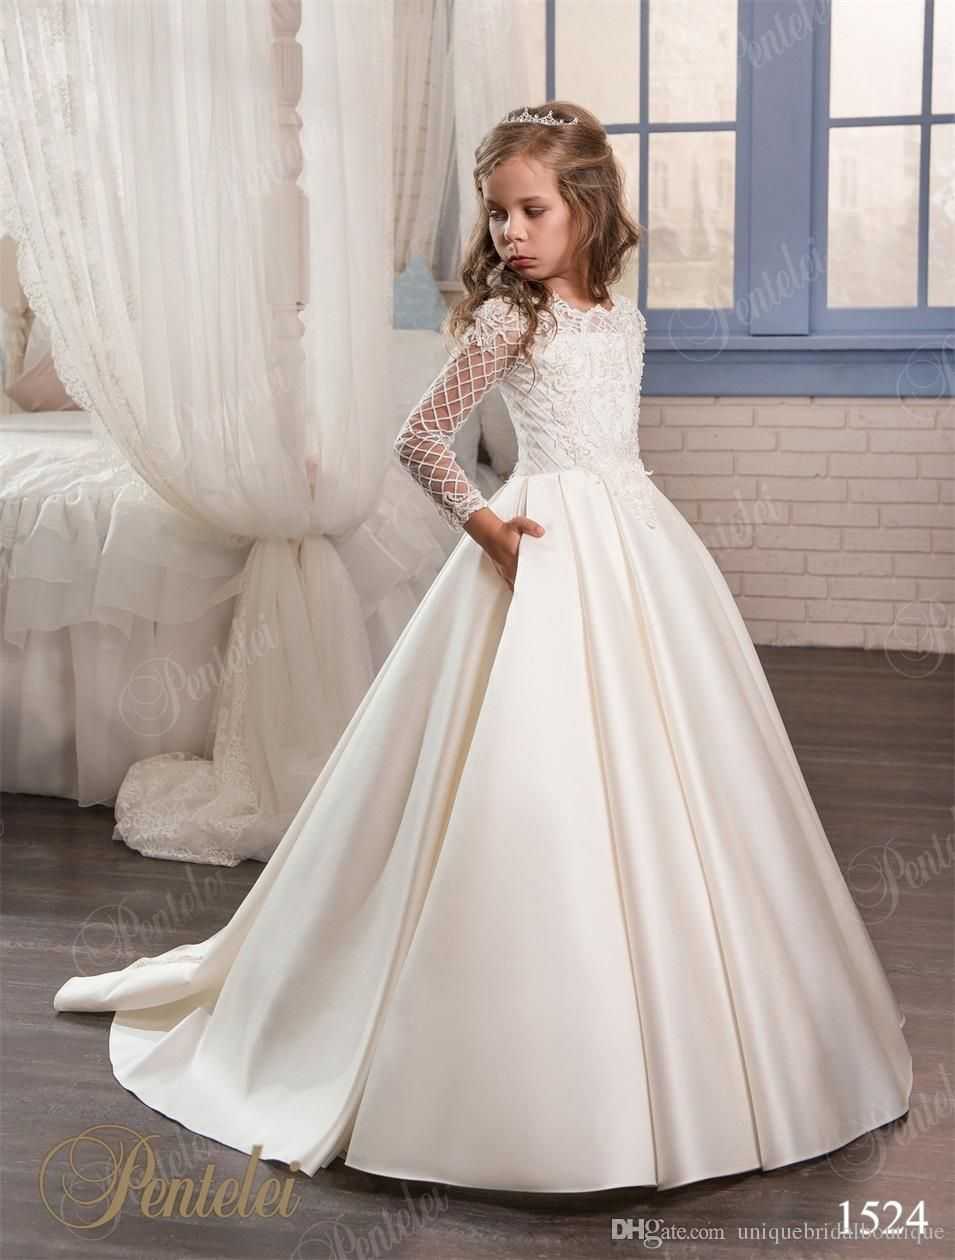 Wedding dresses for little girls 2017 pentelei cheap with for Little flower girl wedding dresses